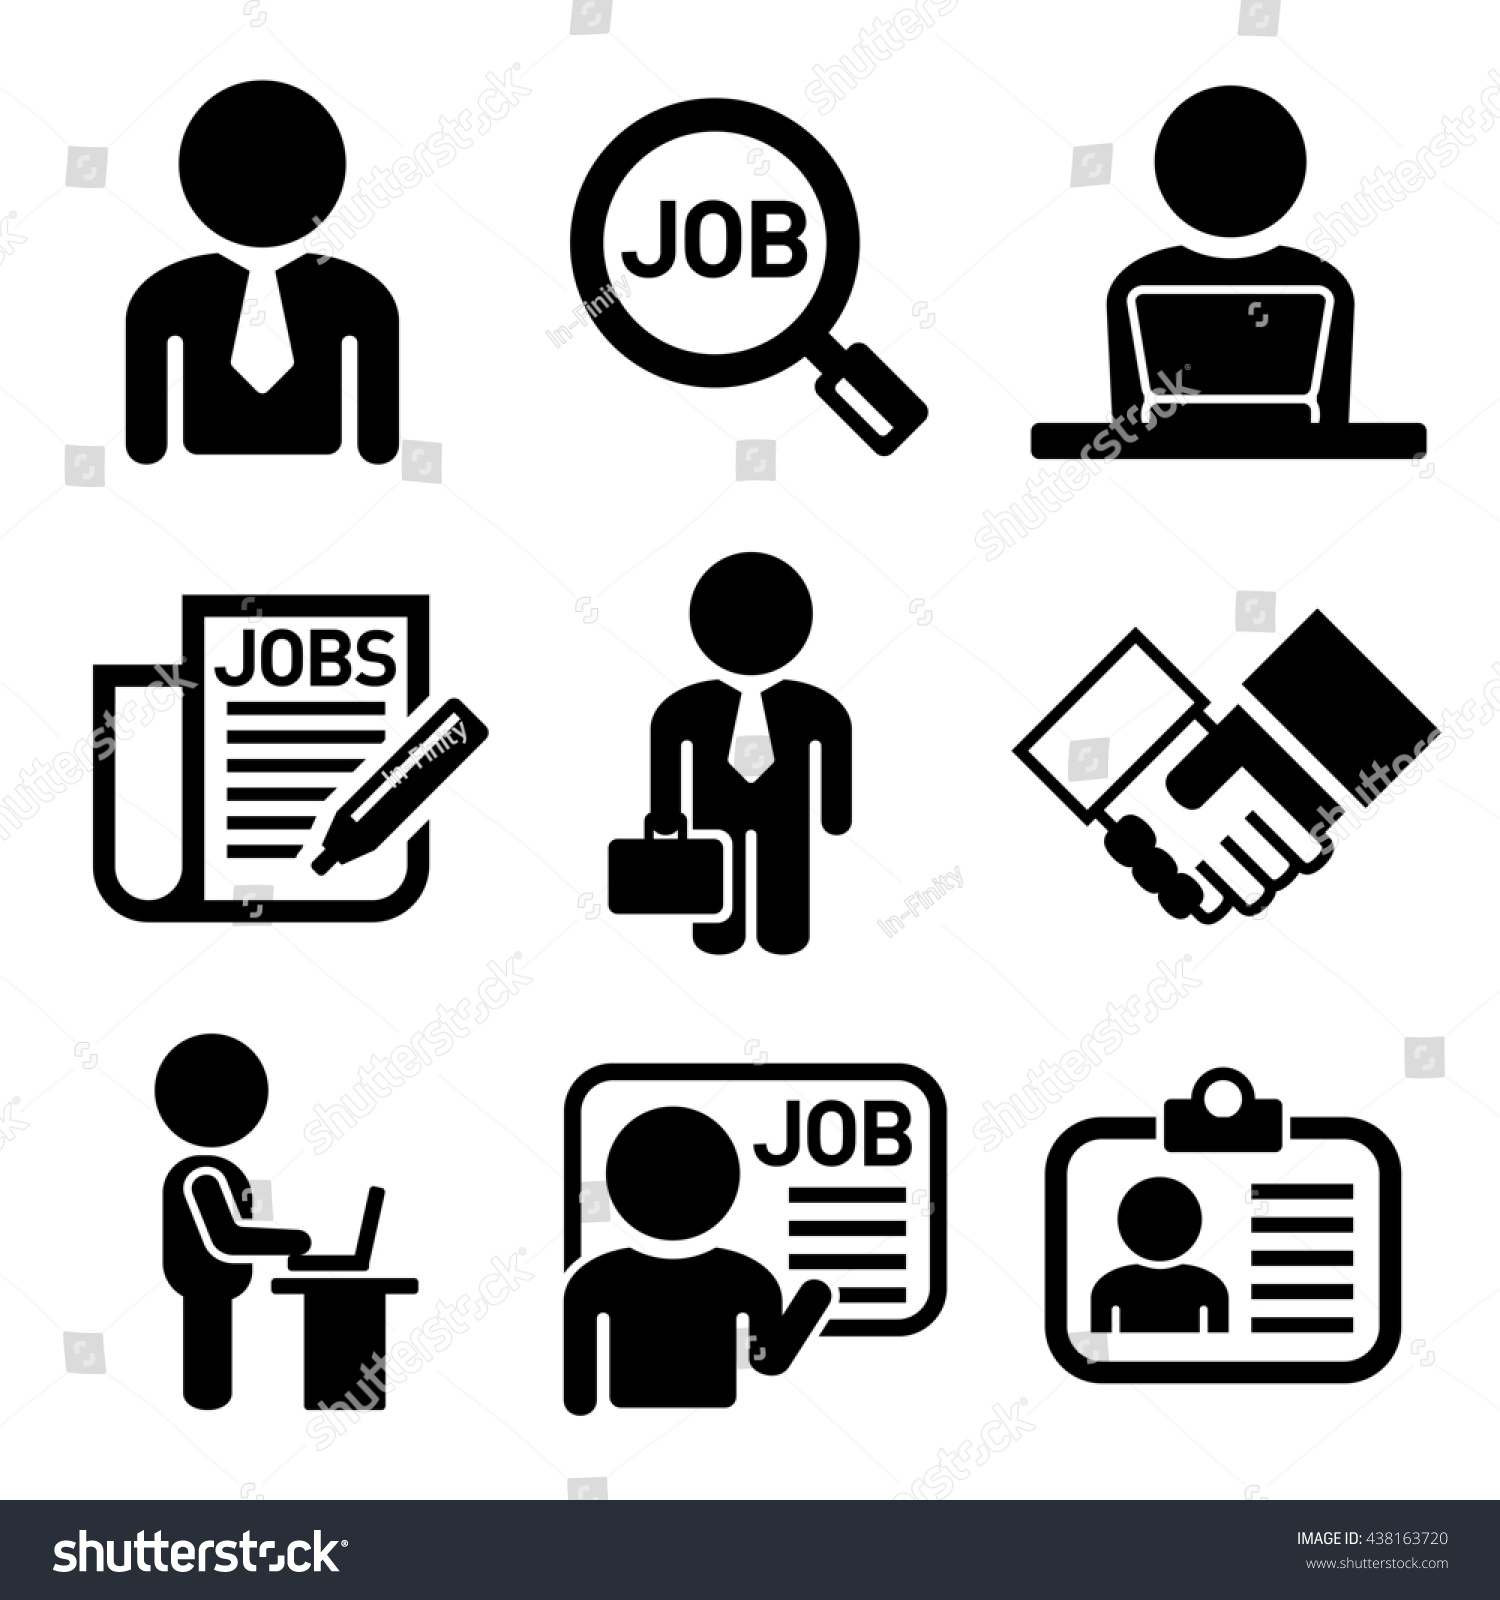 business management human job resources icons stock illustration  - business management human job resources icons stock illustration  shutterstock